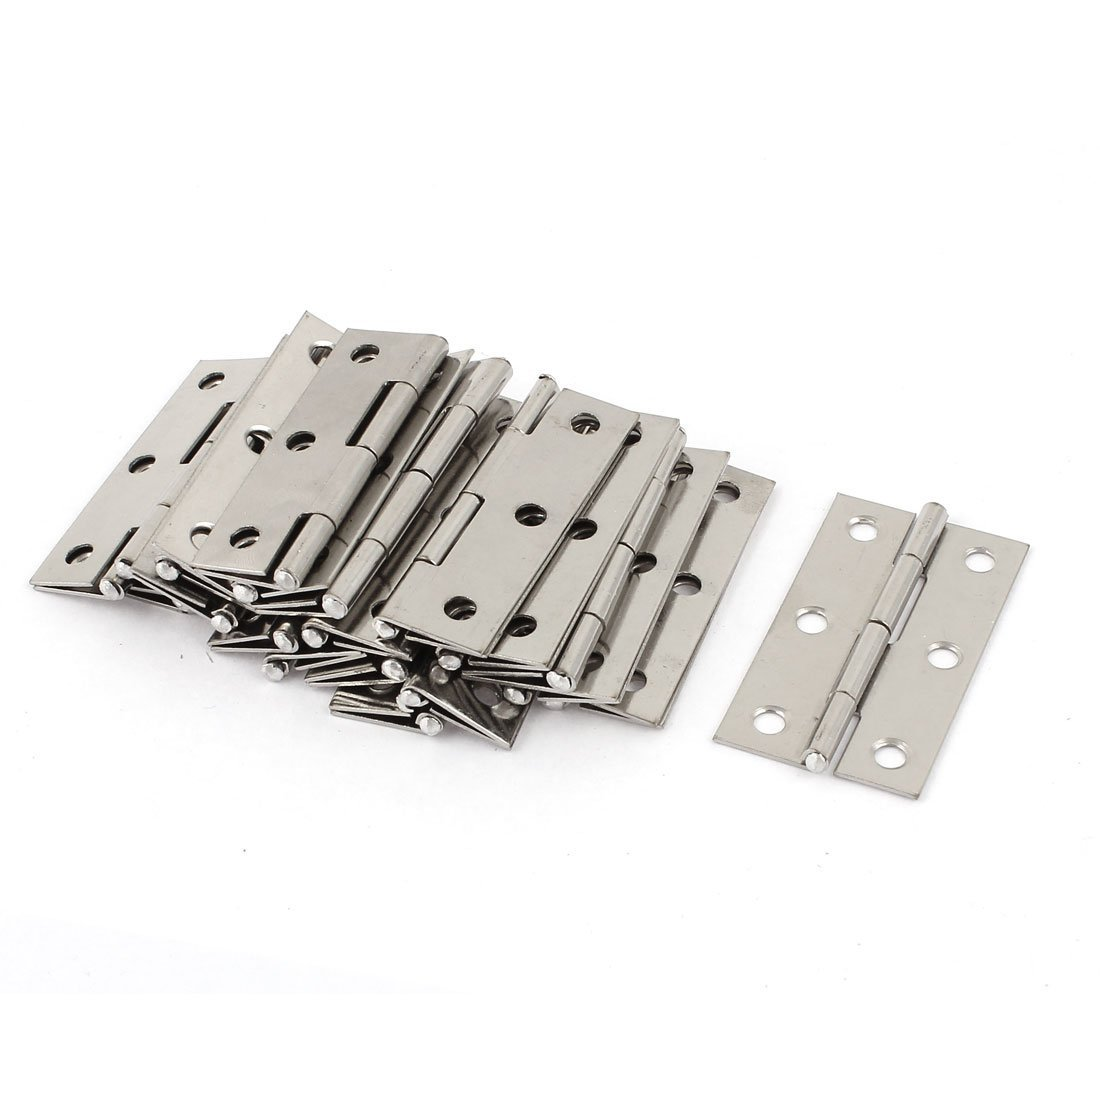 20 Pcs Silver Stainless Steel 6 Mounting Holes Butt Hinges 2.5 Inches Long